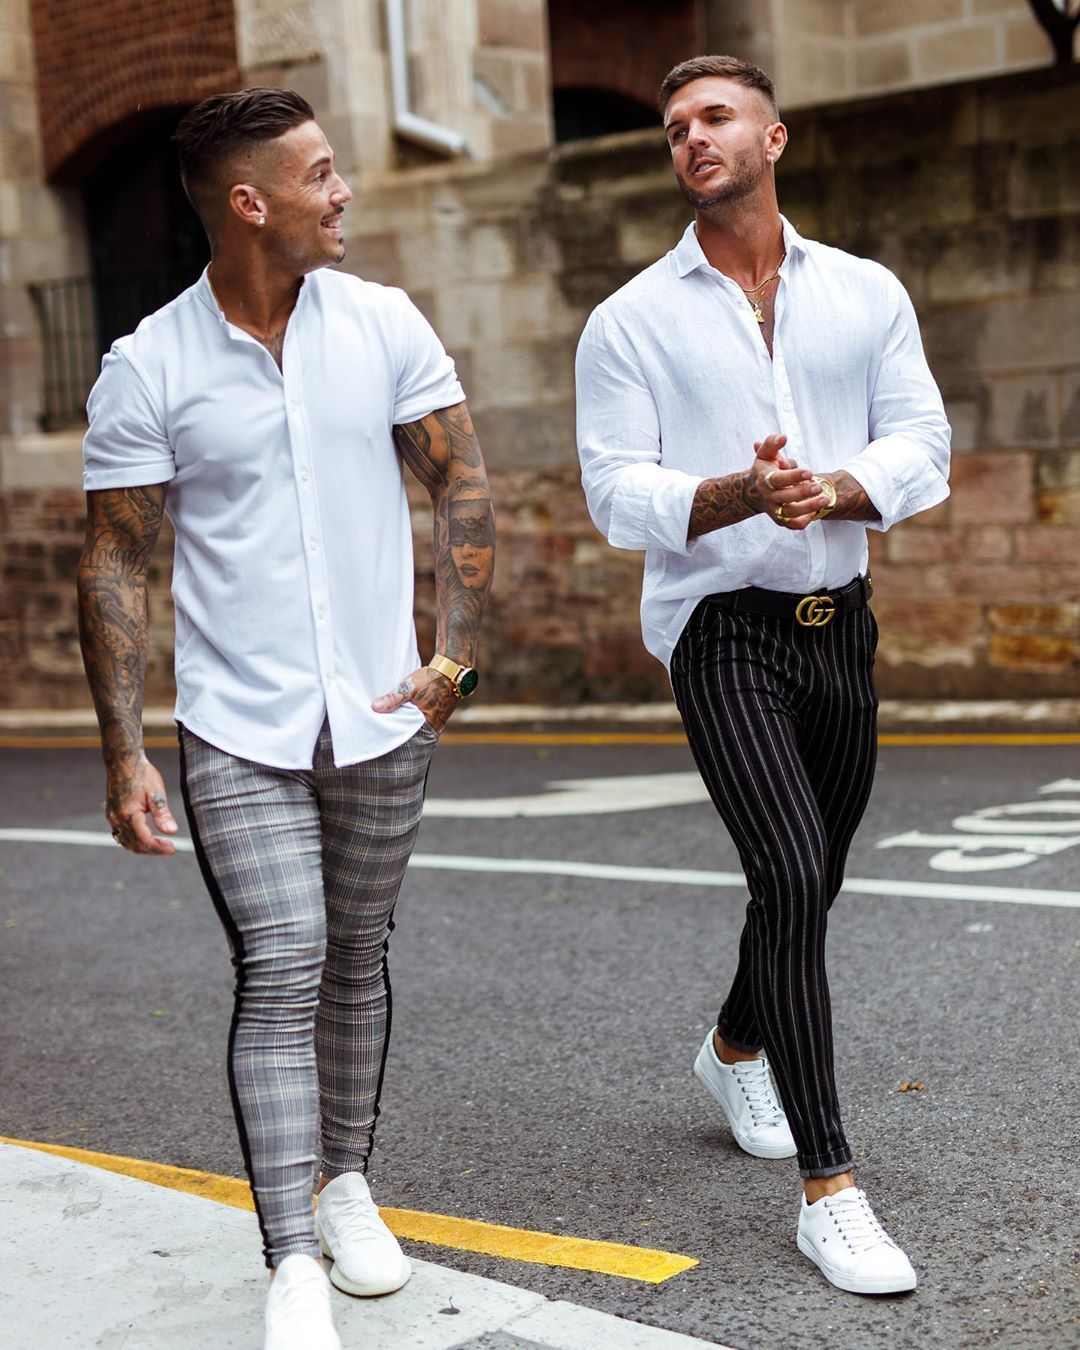 Gingtto Mens Chinos Black Vertical Striped Trousers Slim Fit Stretch Skinny Pant Mens Outfits Pants Outfit Men Chinos Men Outfit [ 1350 x 1080 Pixel ]